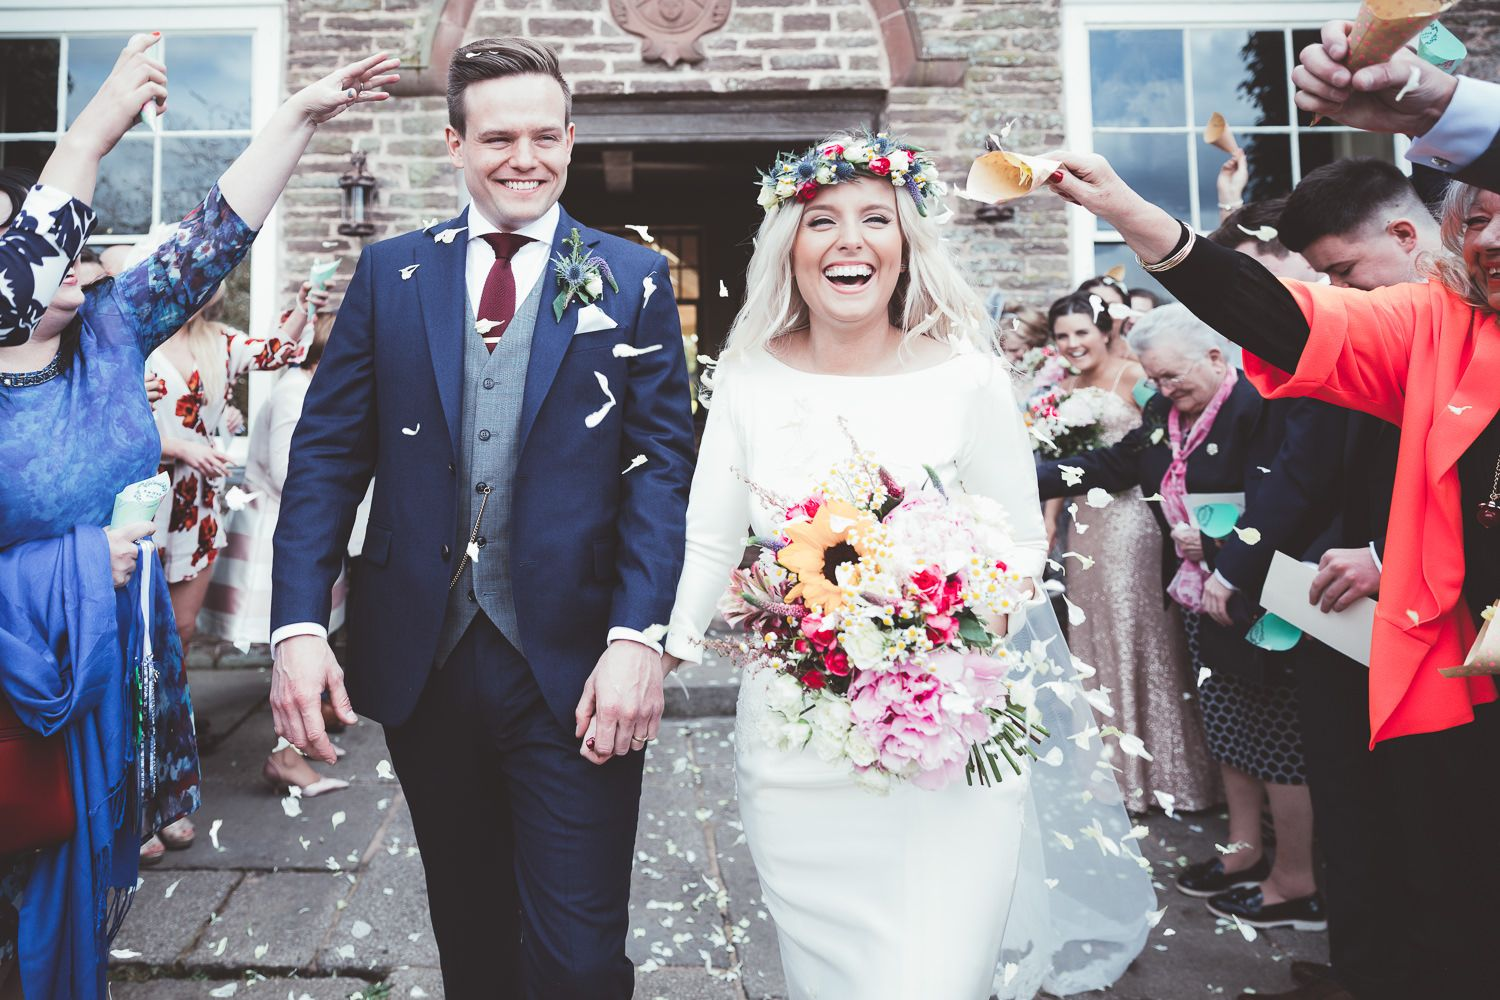 Deswell Court Rustic Barn Wedding with Bright Flowers & Gold BM ...